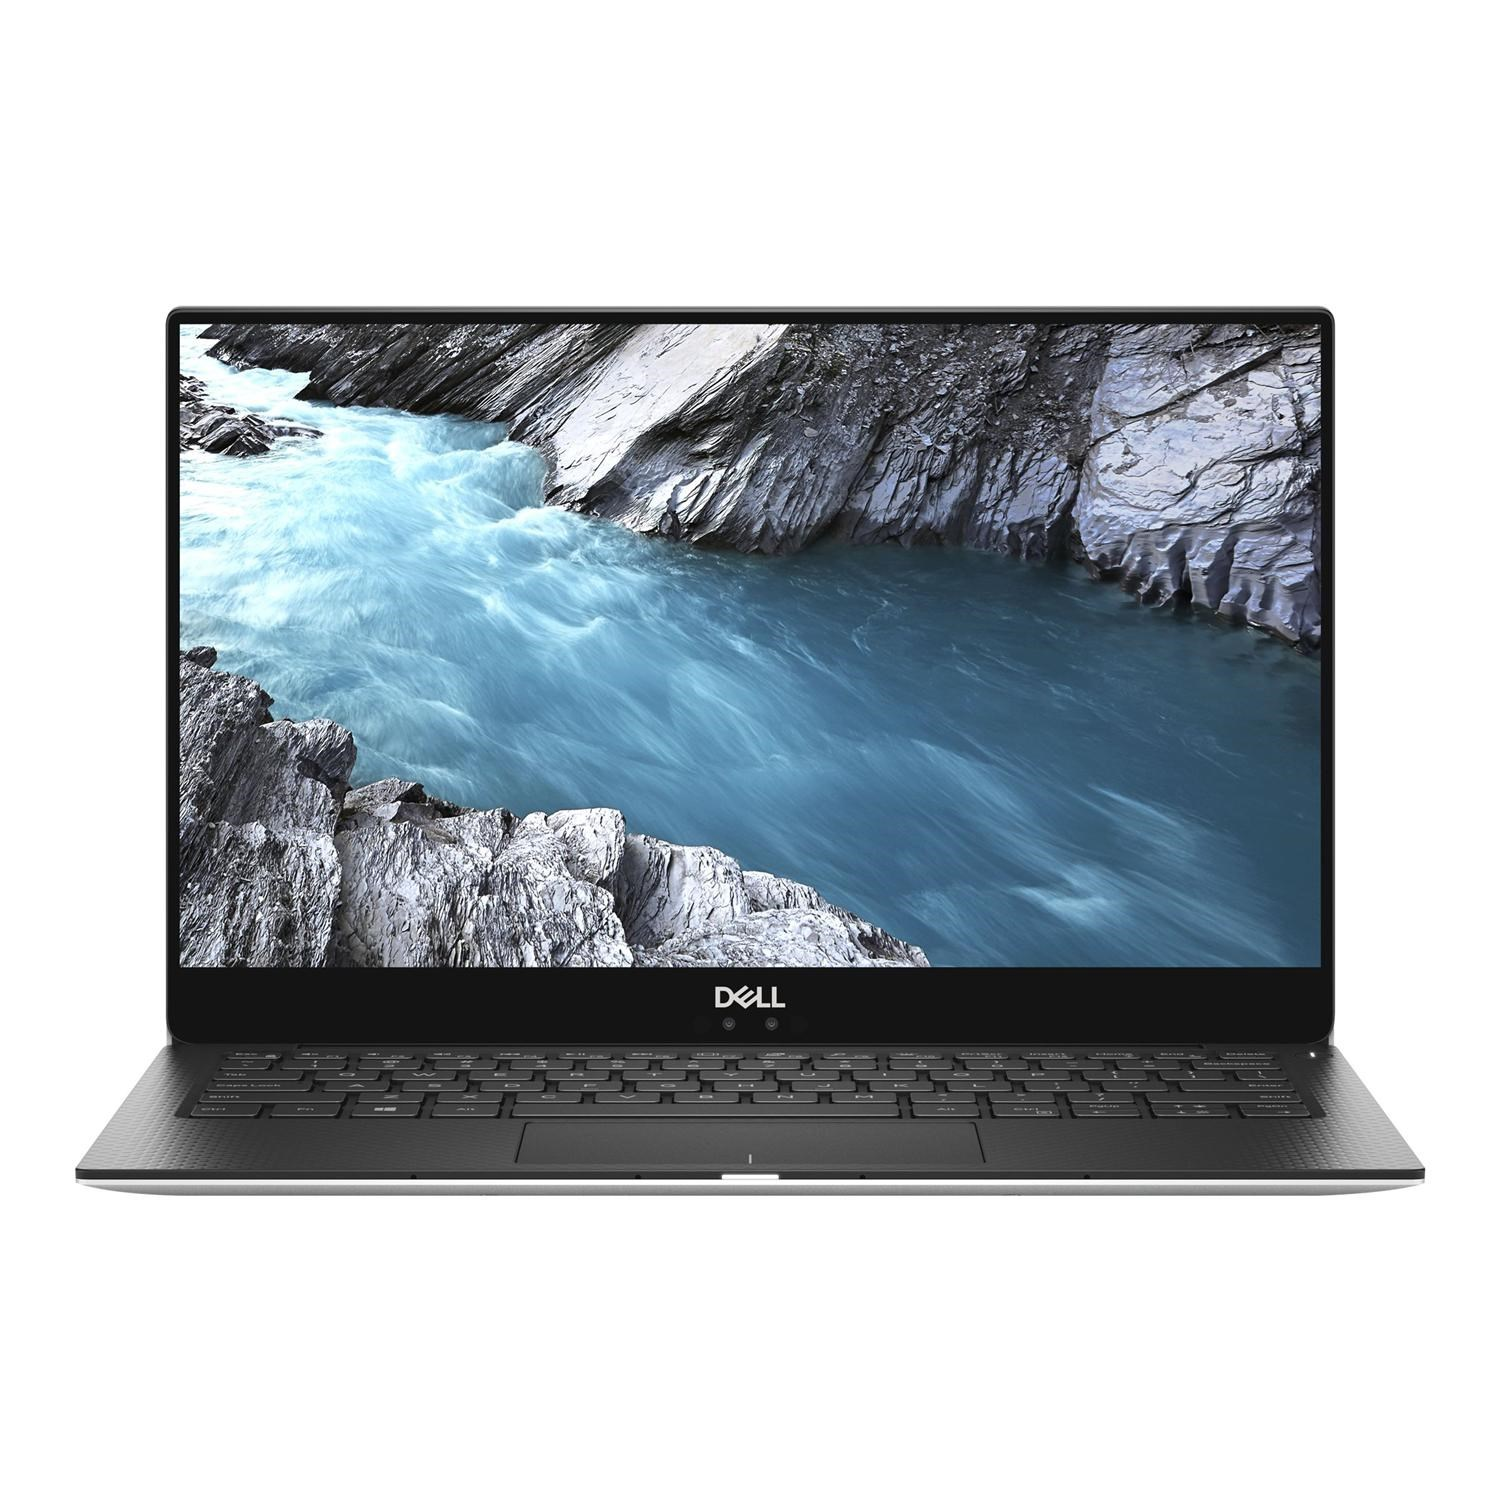 Dell XPS 13 9370 Core i7-8550U 16GB 512GB SSD 13 3 Inch Touchscreen Windows  10 Pro Laptop